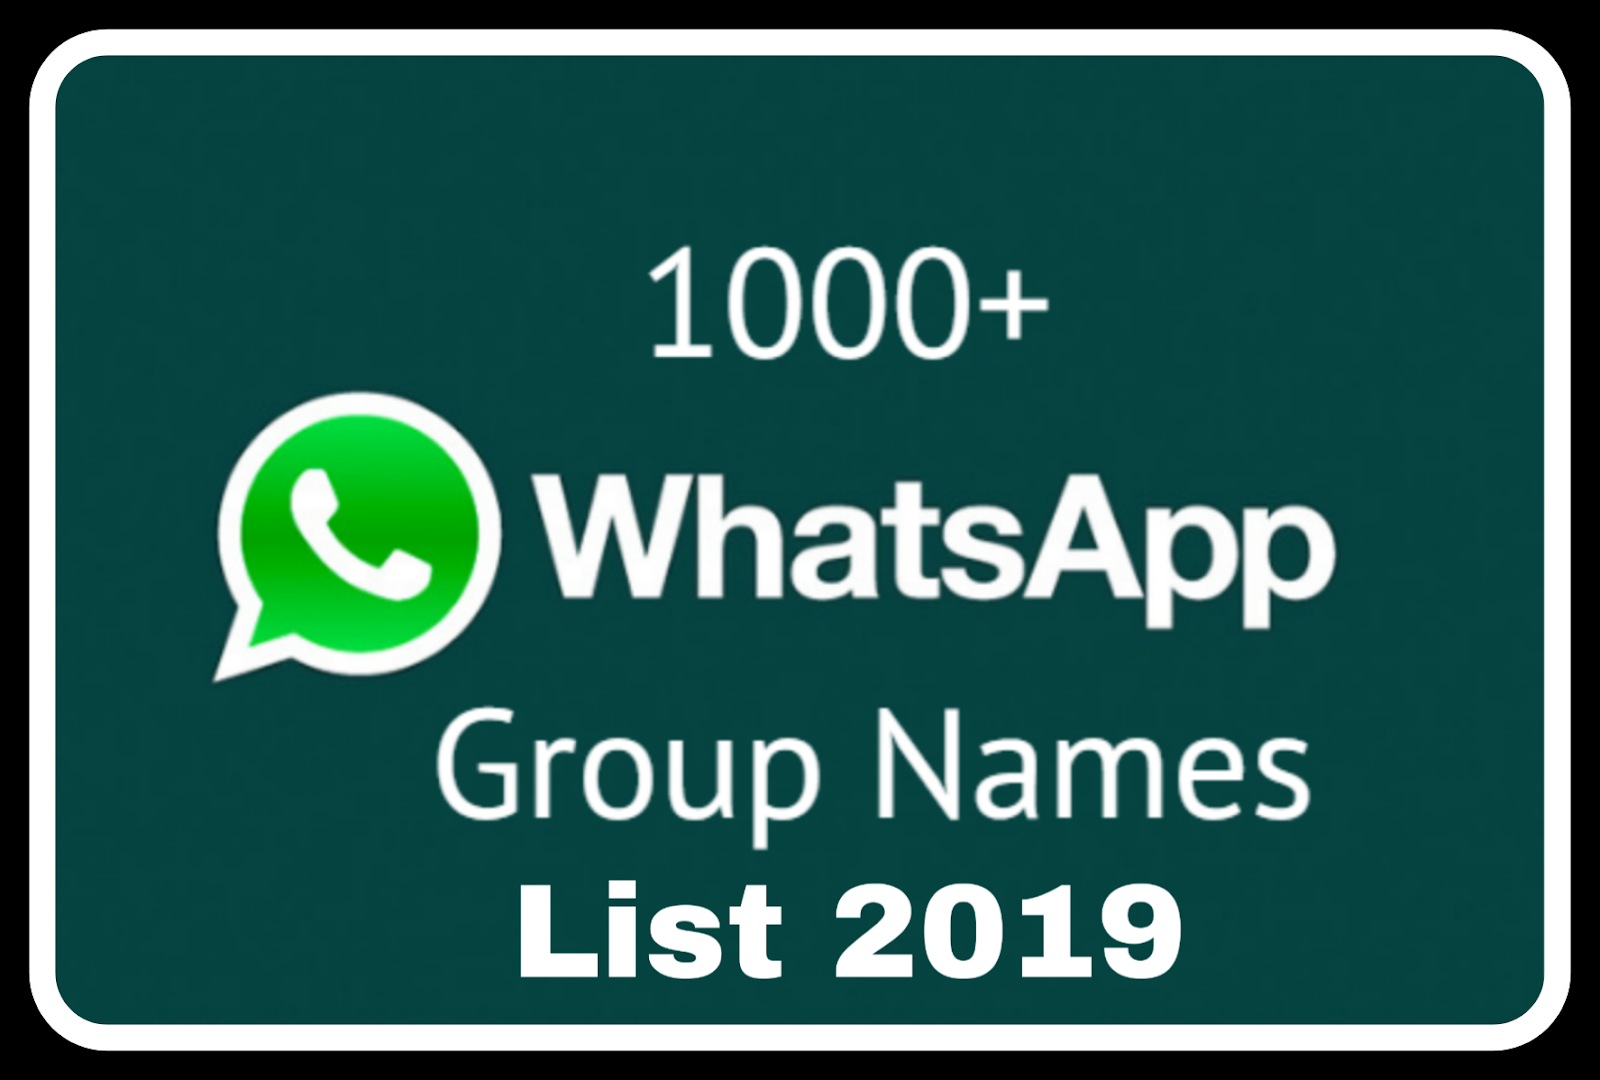 1000+ WhatsApp Group Names For Friends, Family Members, Cool, Funny